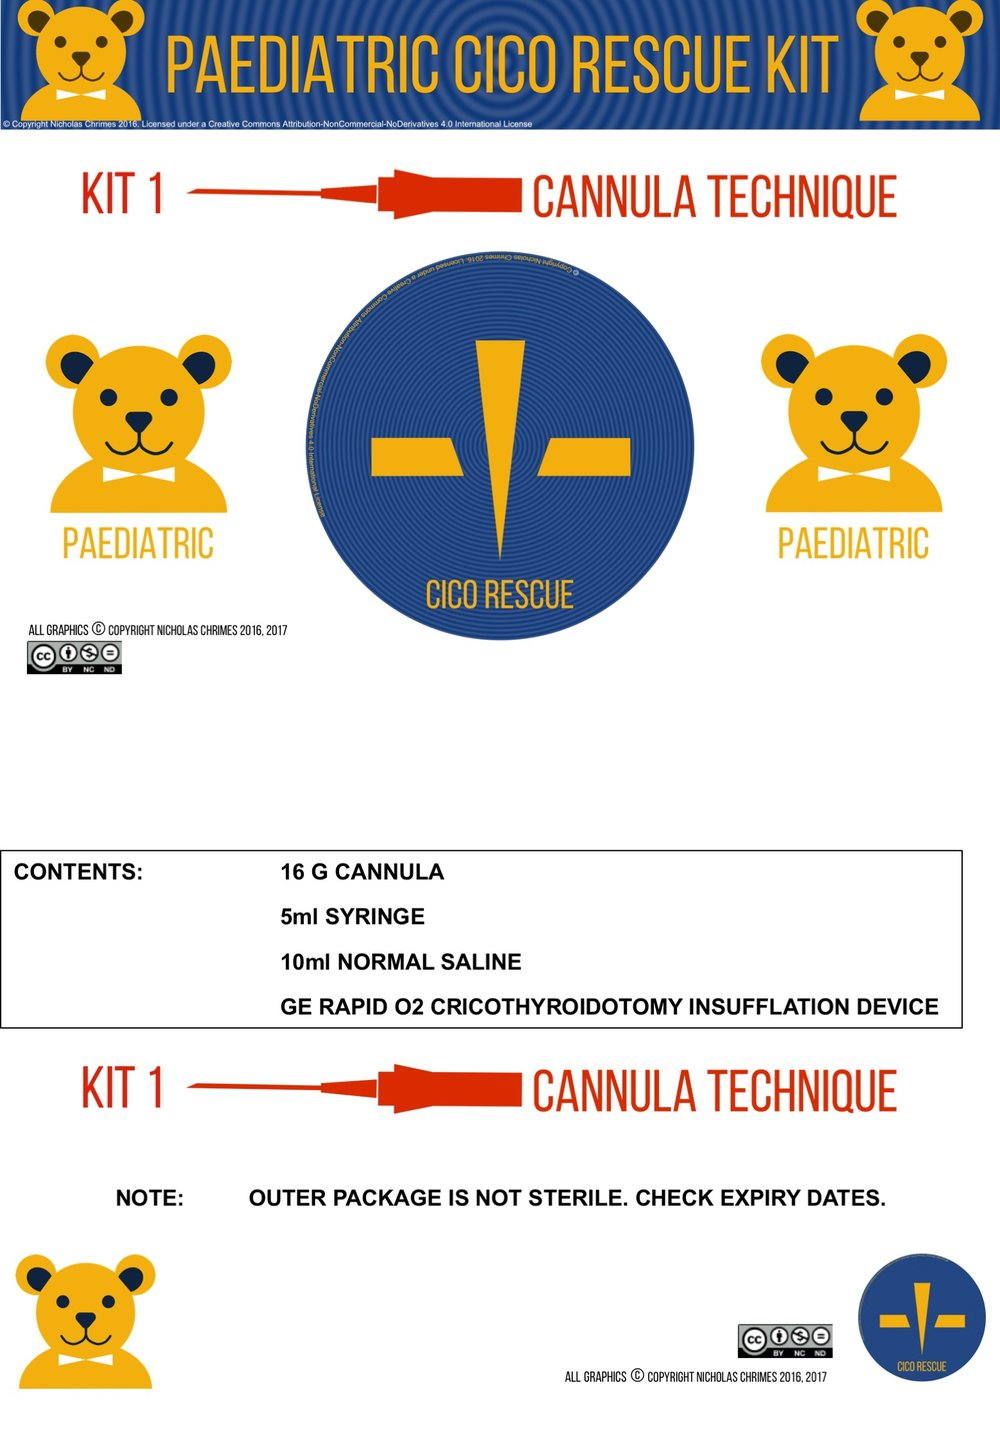 Paediatric Cannula CICO Rescue Kit - Complete Labels & Contents